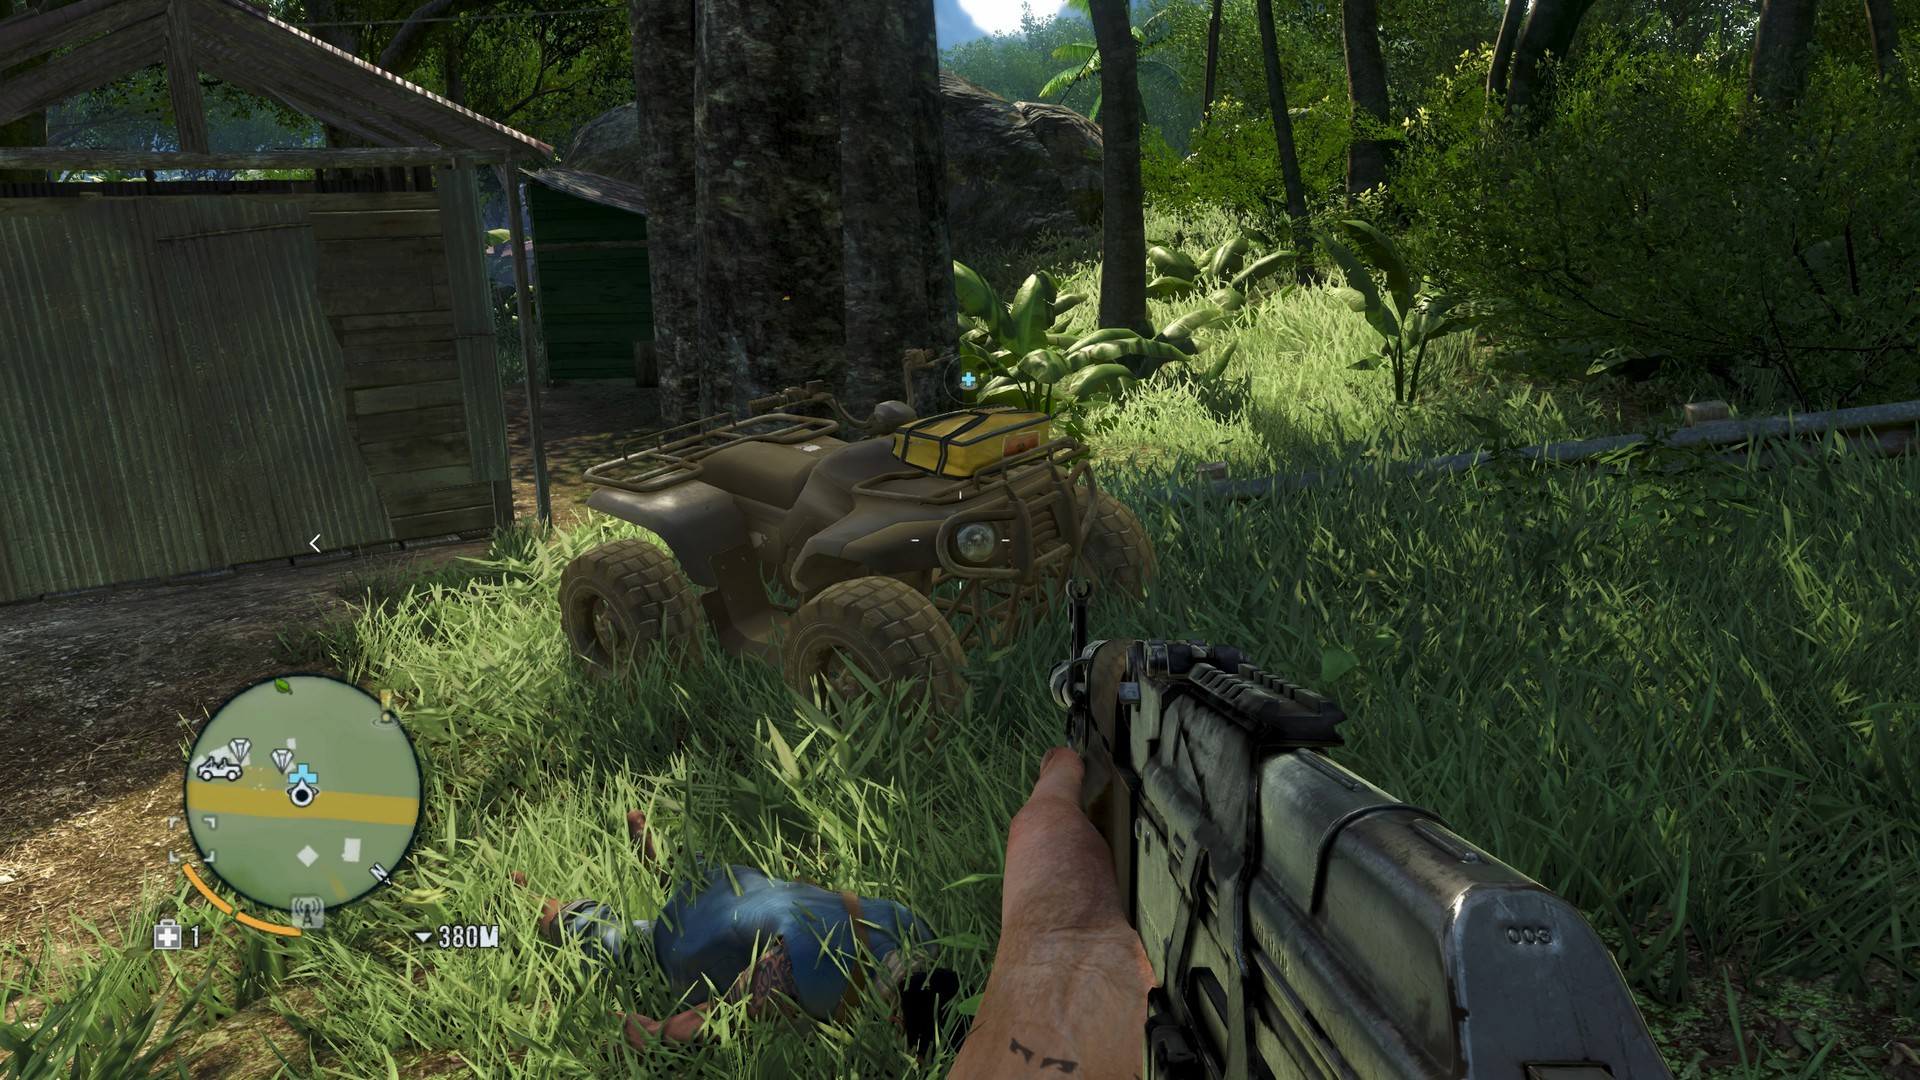 Road Trip Trophy Far Cry 3 Classic Edition Psnprofiles Com